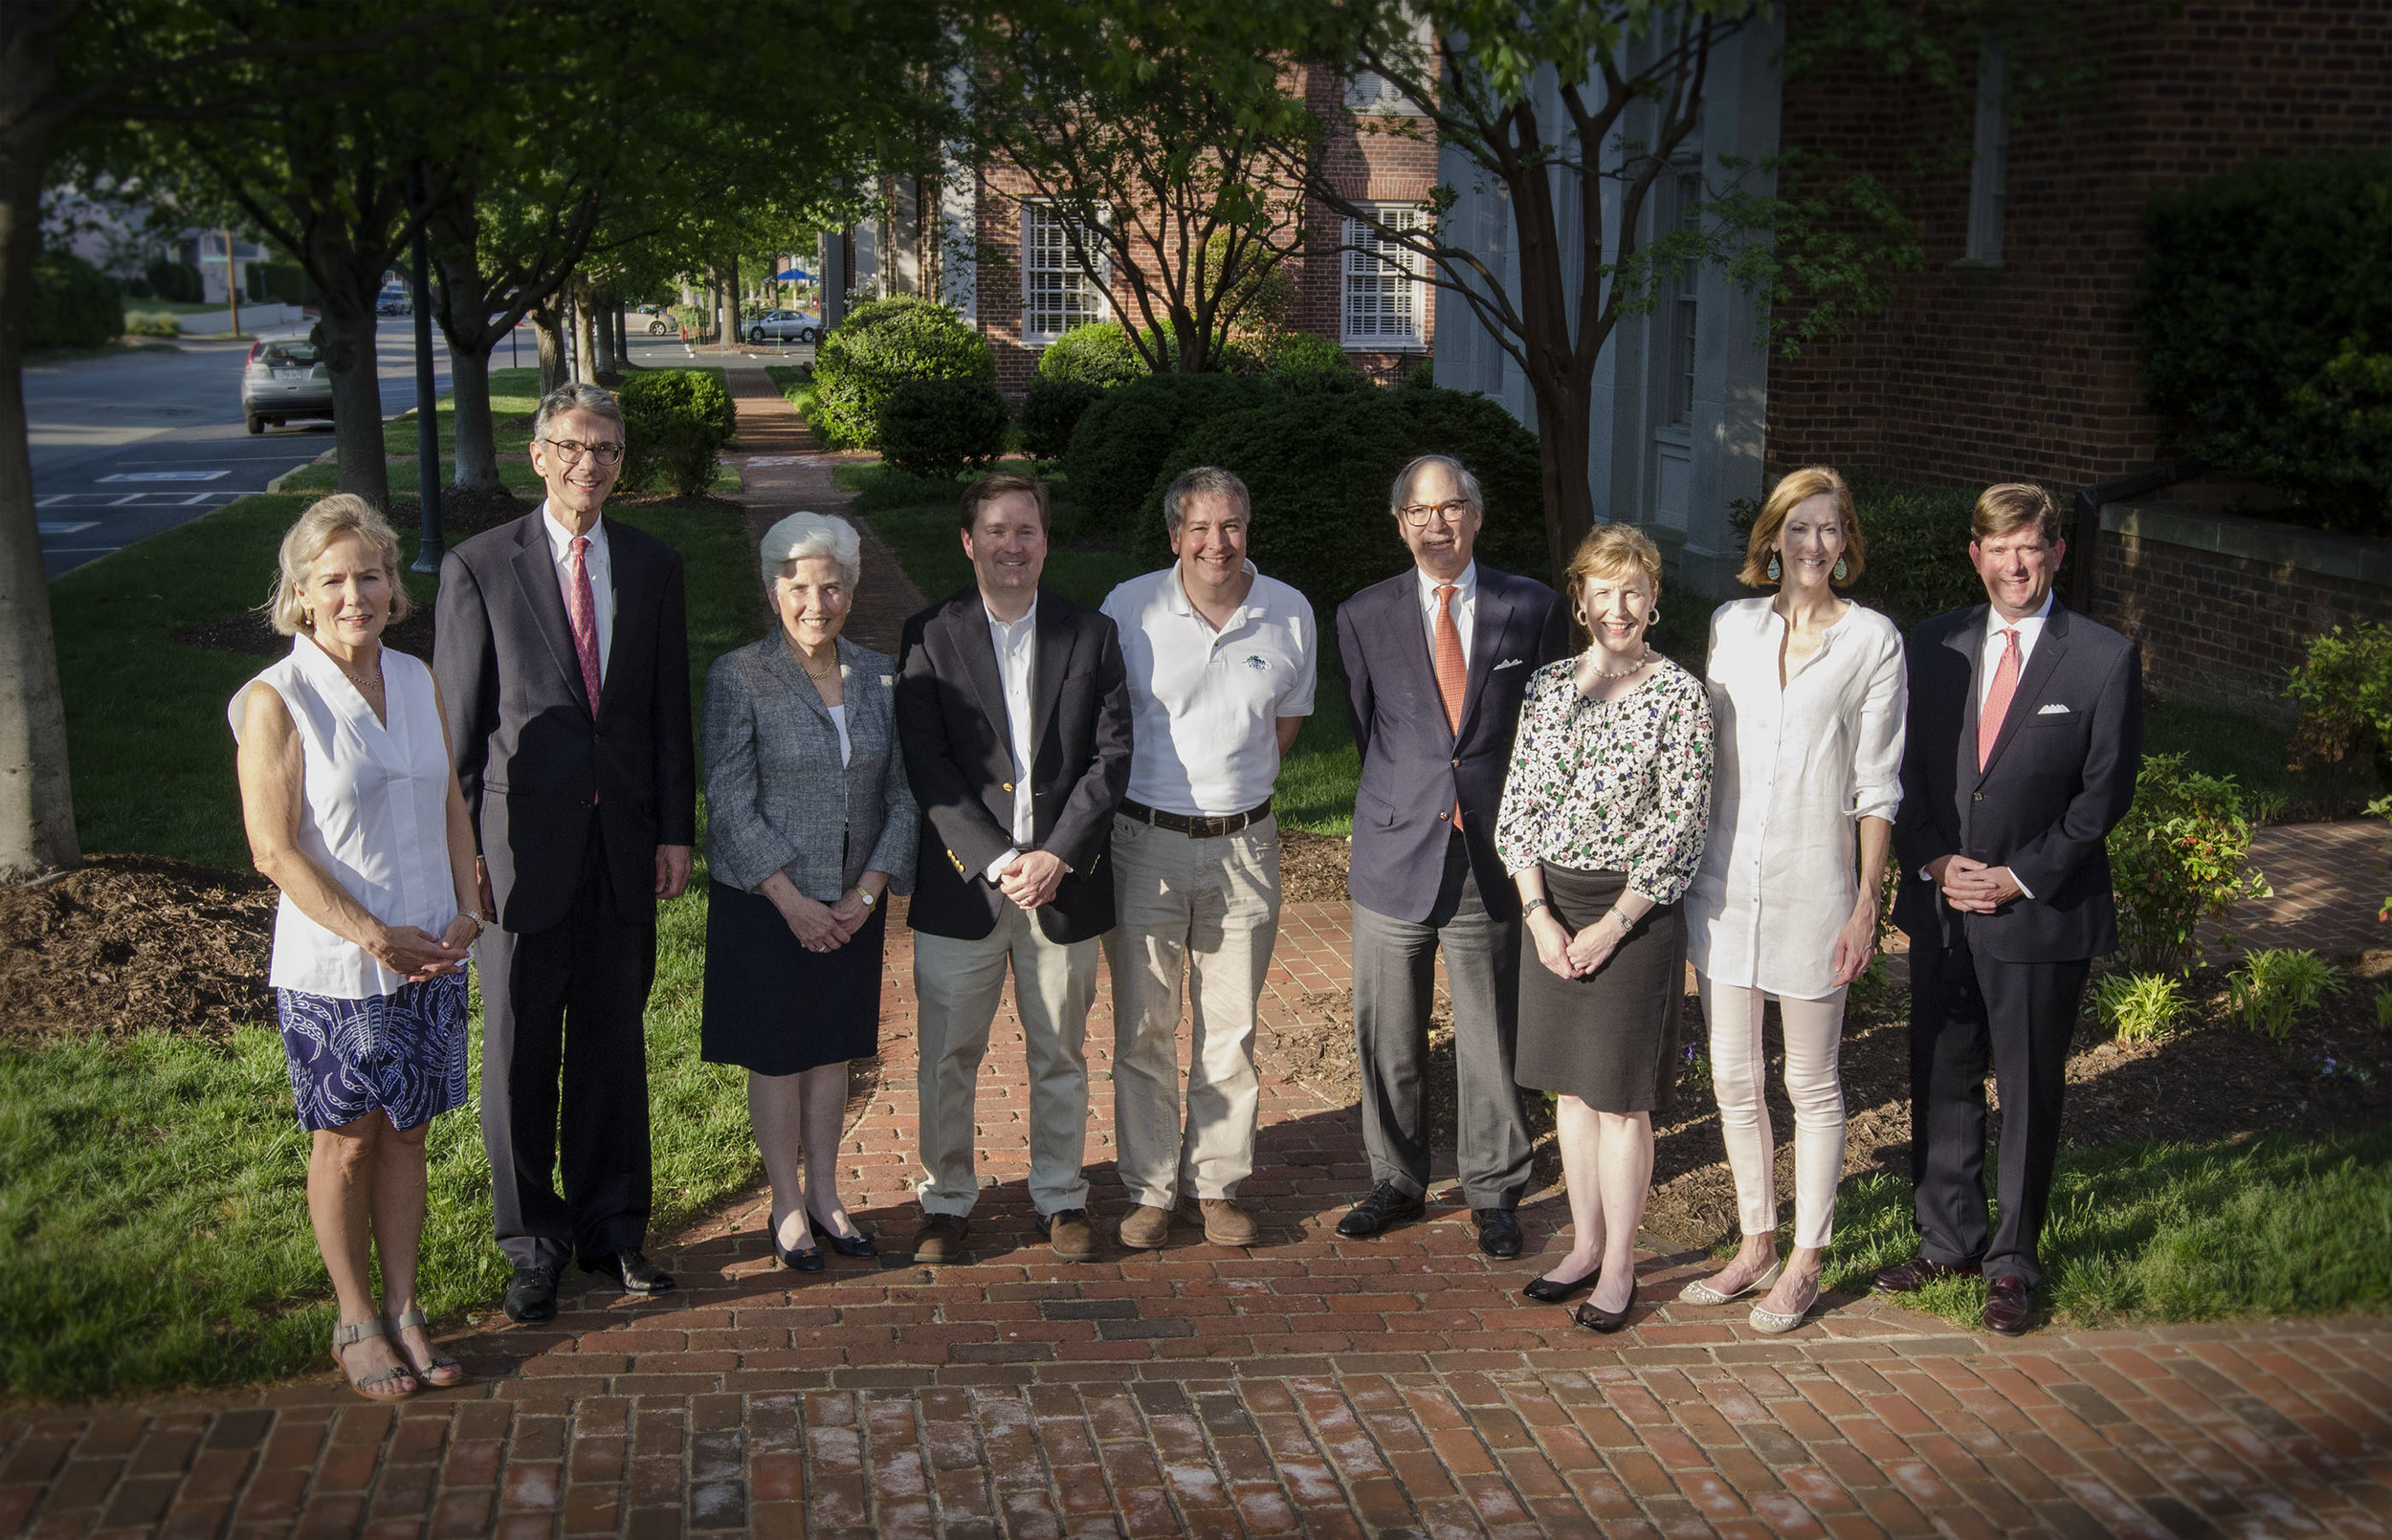 PNC (from left to right): Kathy Watson, Bill Garrison, Jane Peters, Les Yonce, Steve Mintz, Jay Johnston, Margaret Nimmo Holland, Kate Reynolds, Nelson Edmunds.